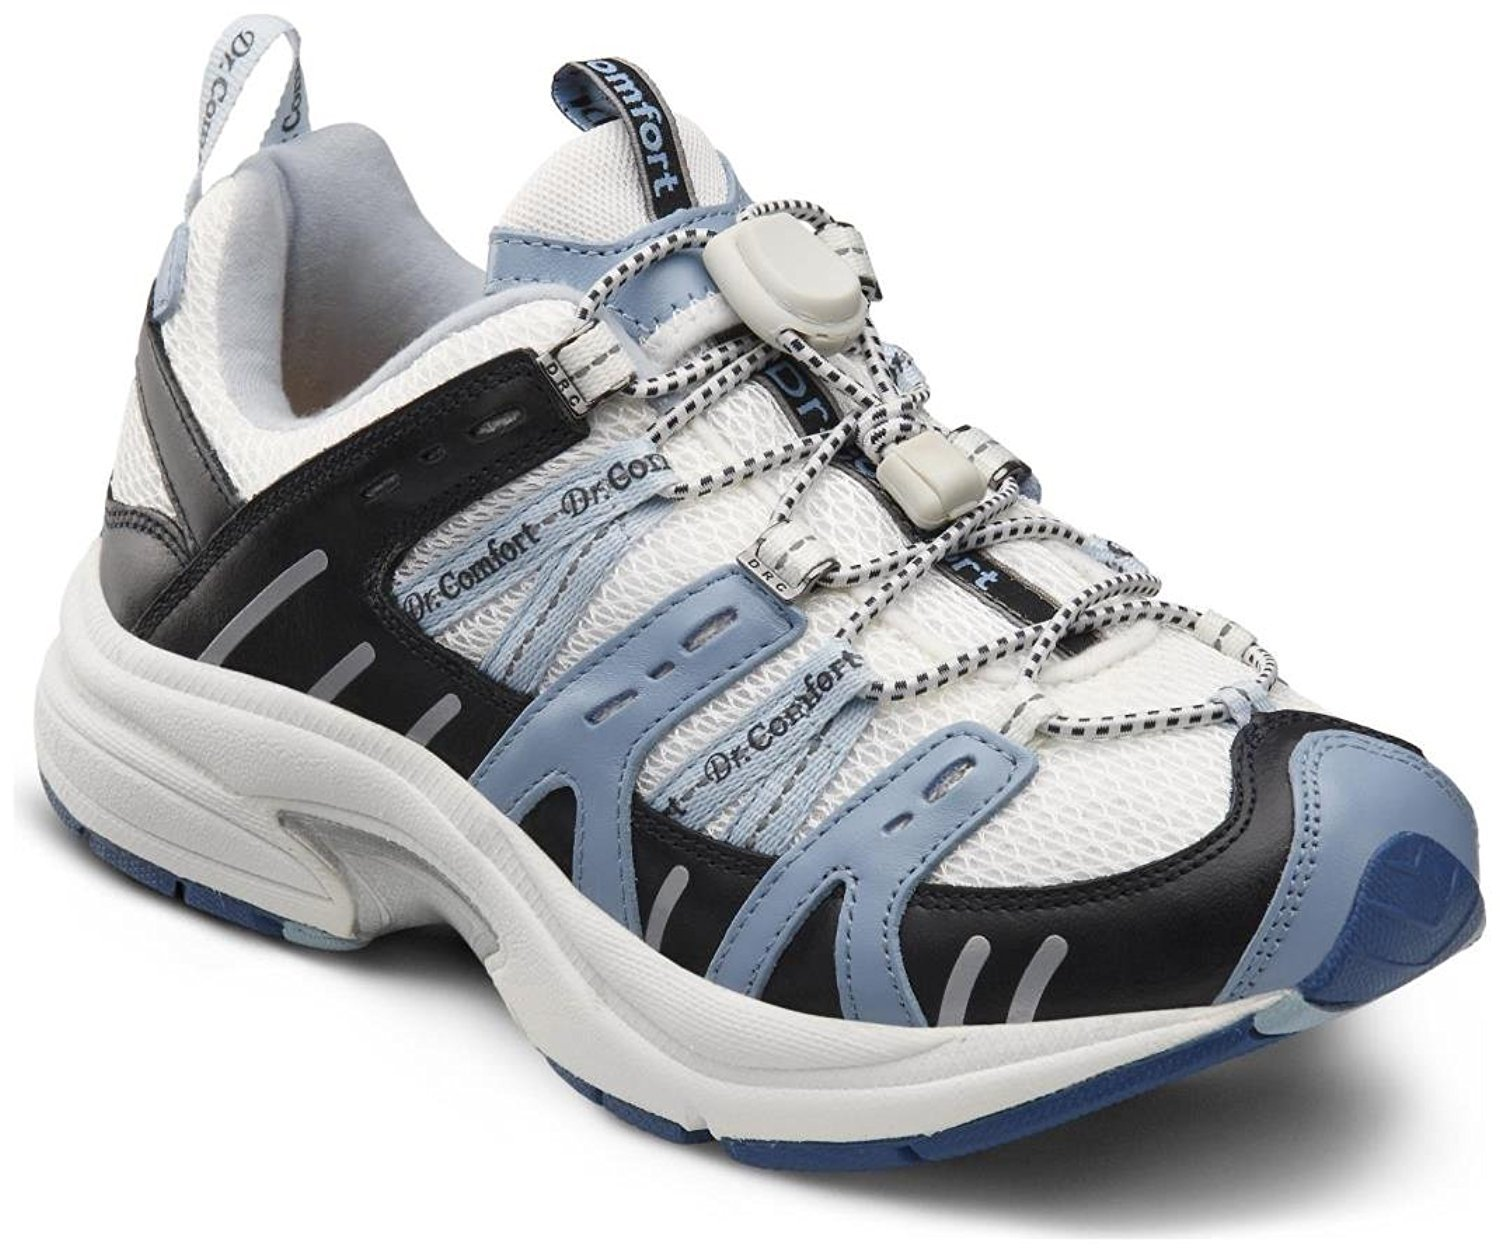 Dr. Comfort Women's Refresh Diabetic Athletic Shoes B00IO849WU 9 C/D US|Blue